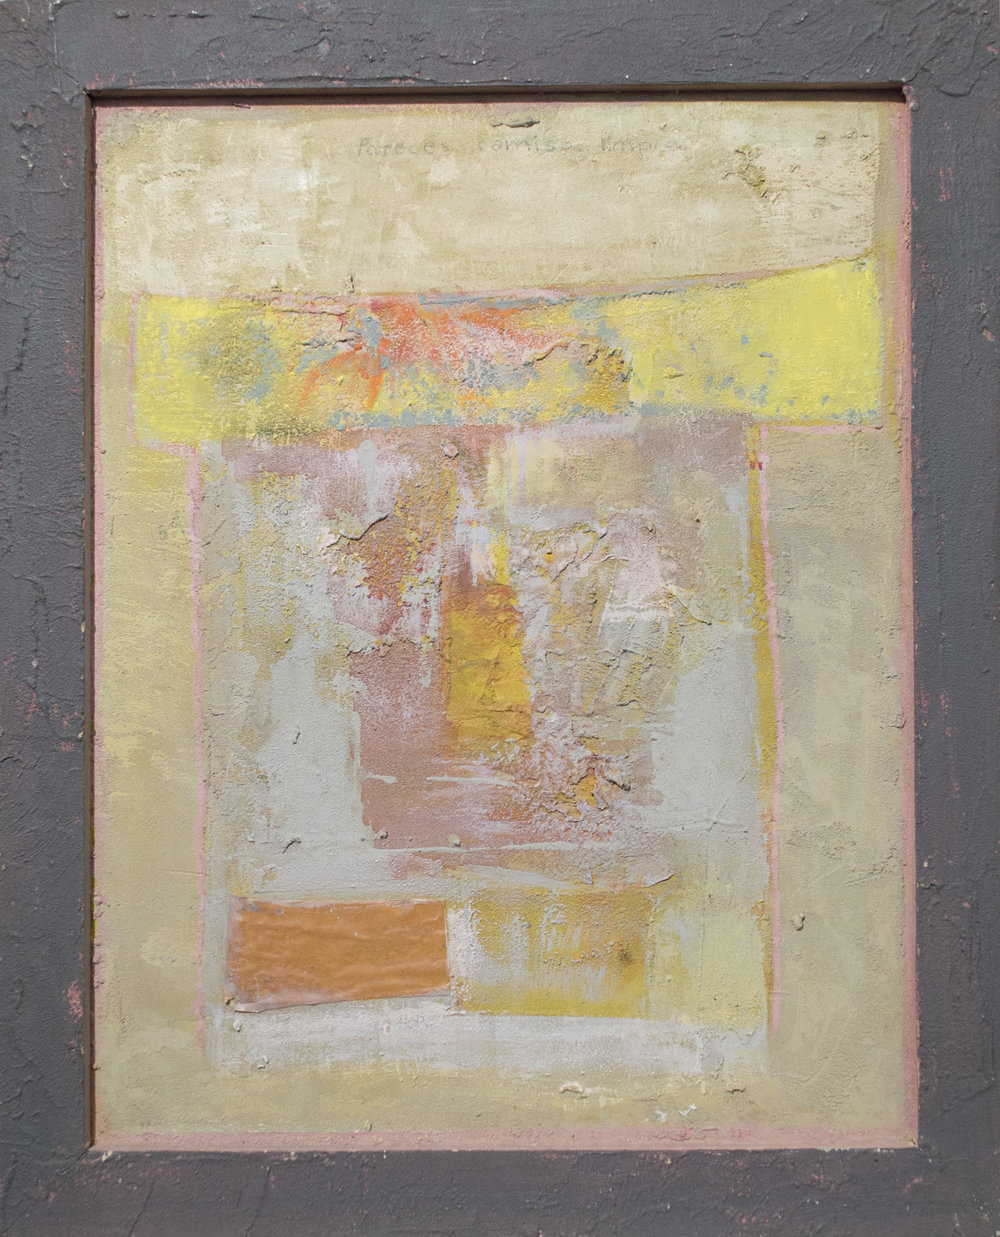 Alberto Mijangos -  1990, oil on panel and frame, 20